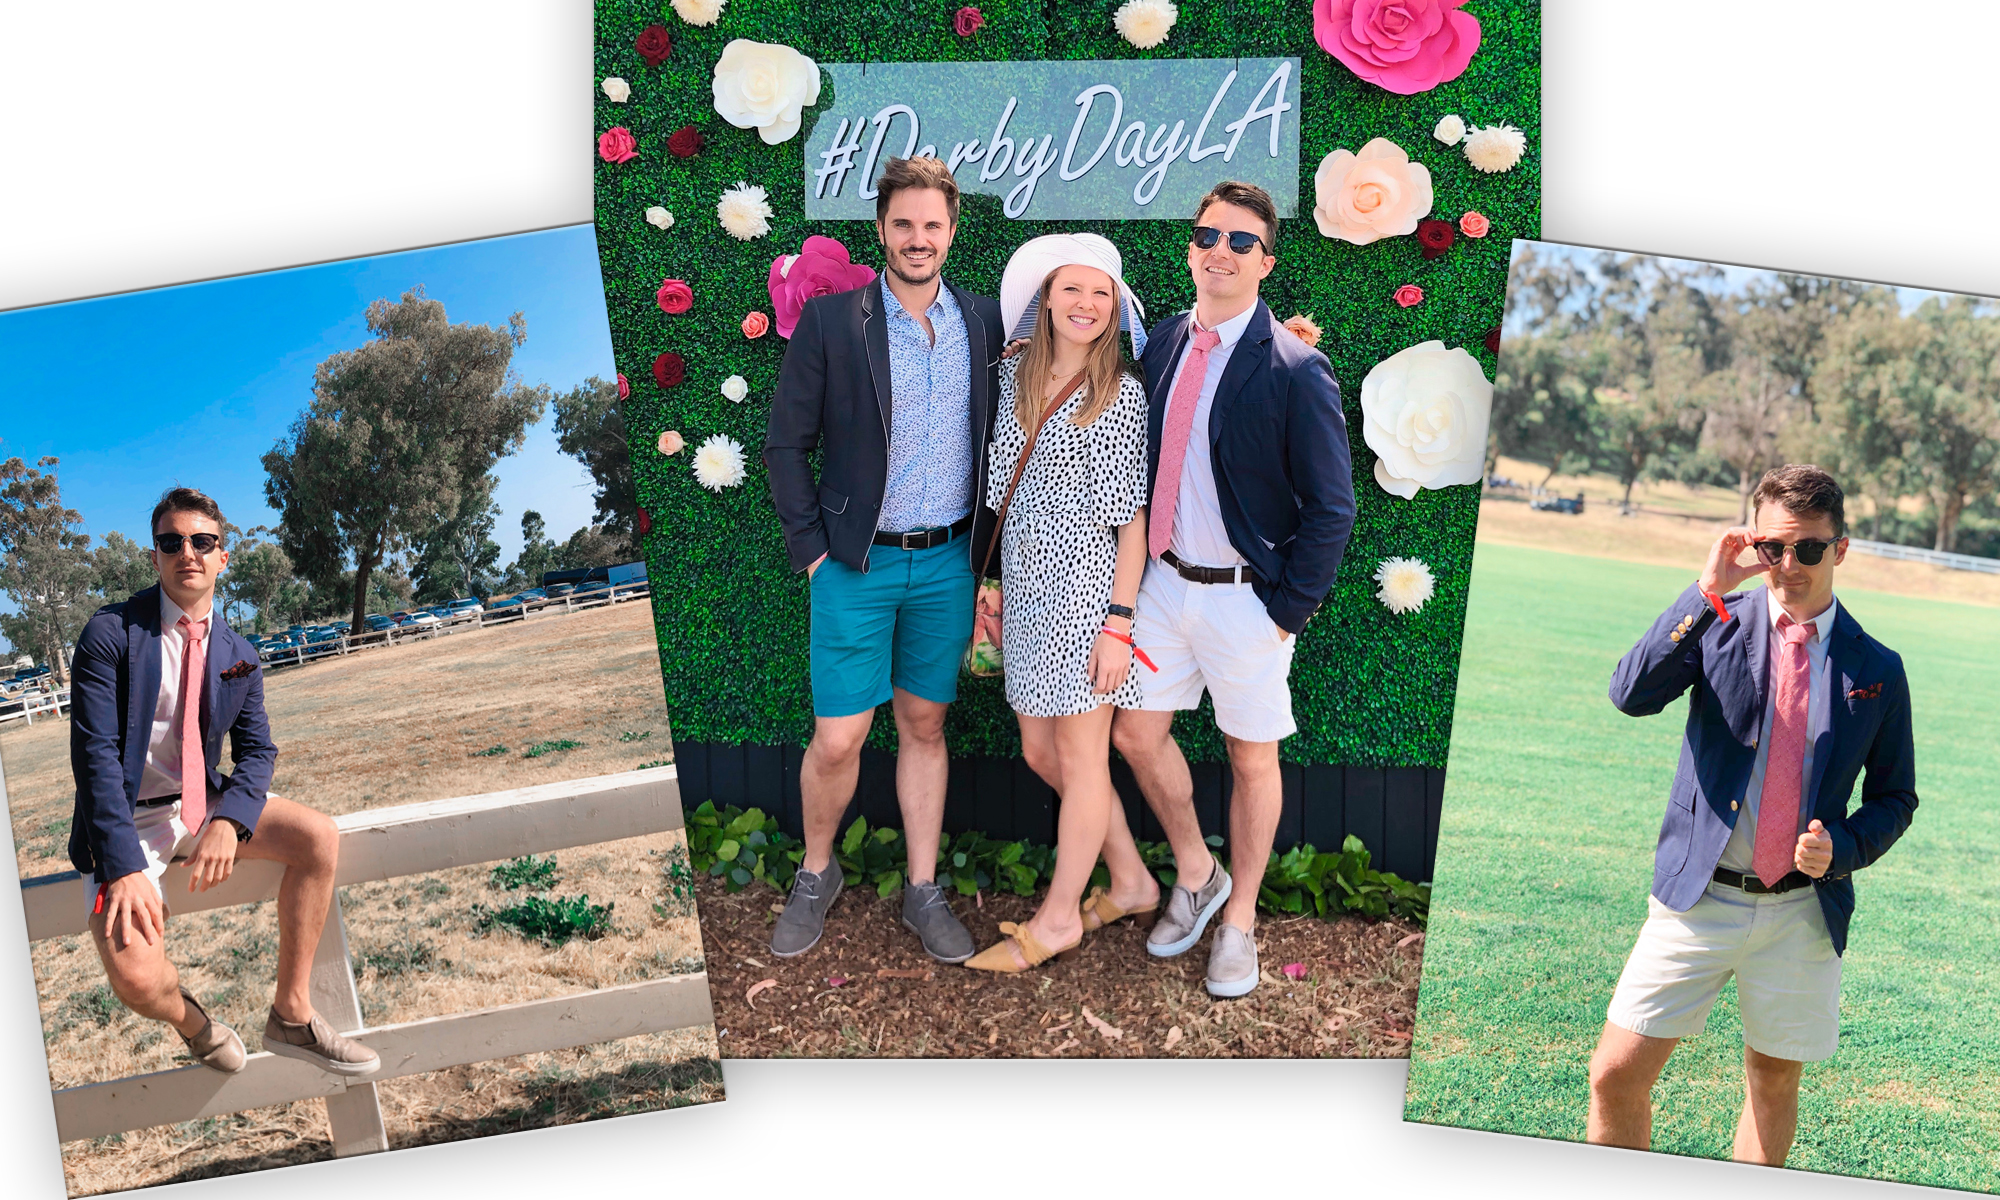 An Inside Peek at Derby Day LA